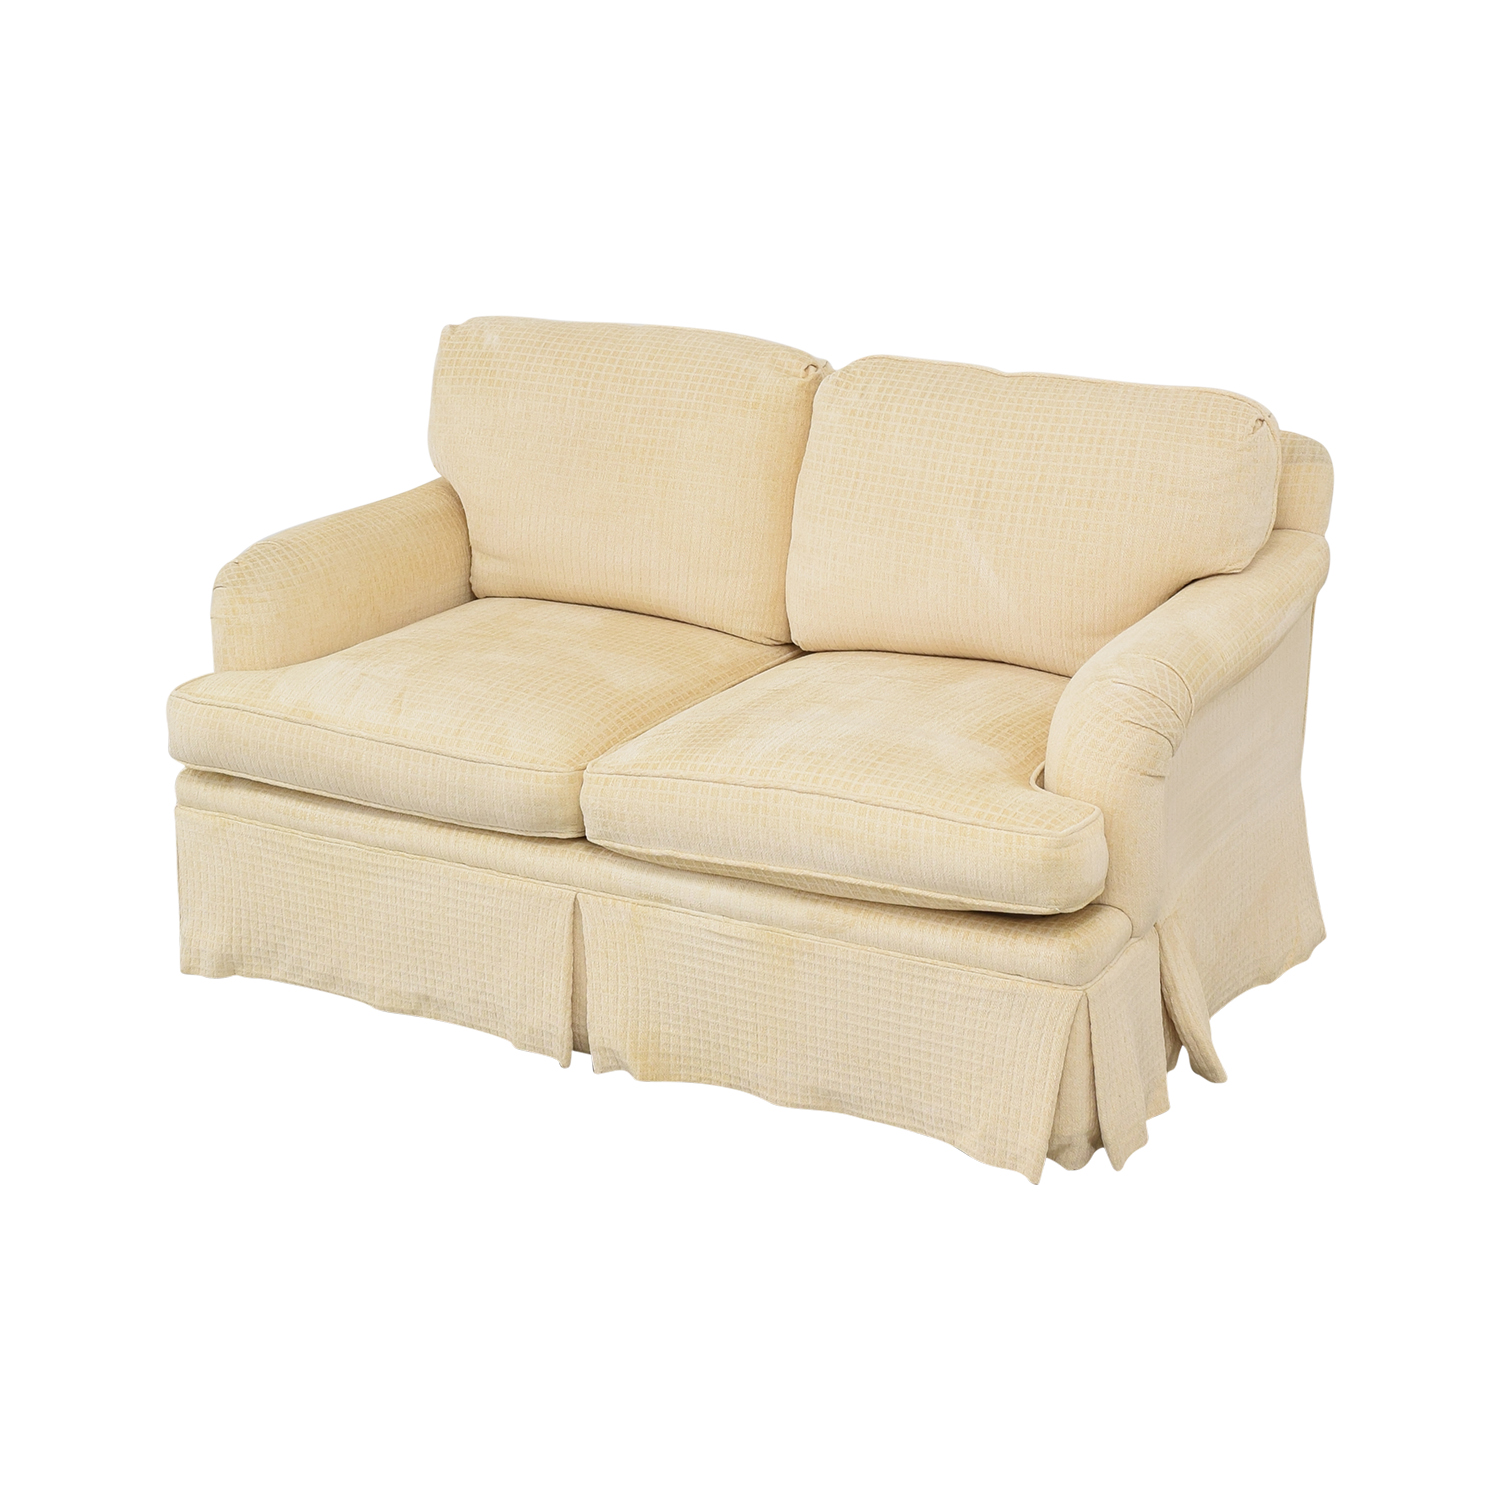 Mason-Art Upholstered Loveseat / Loveseats